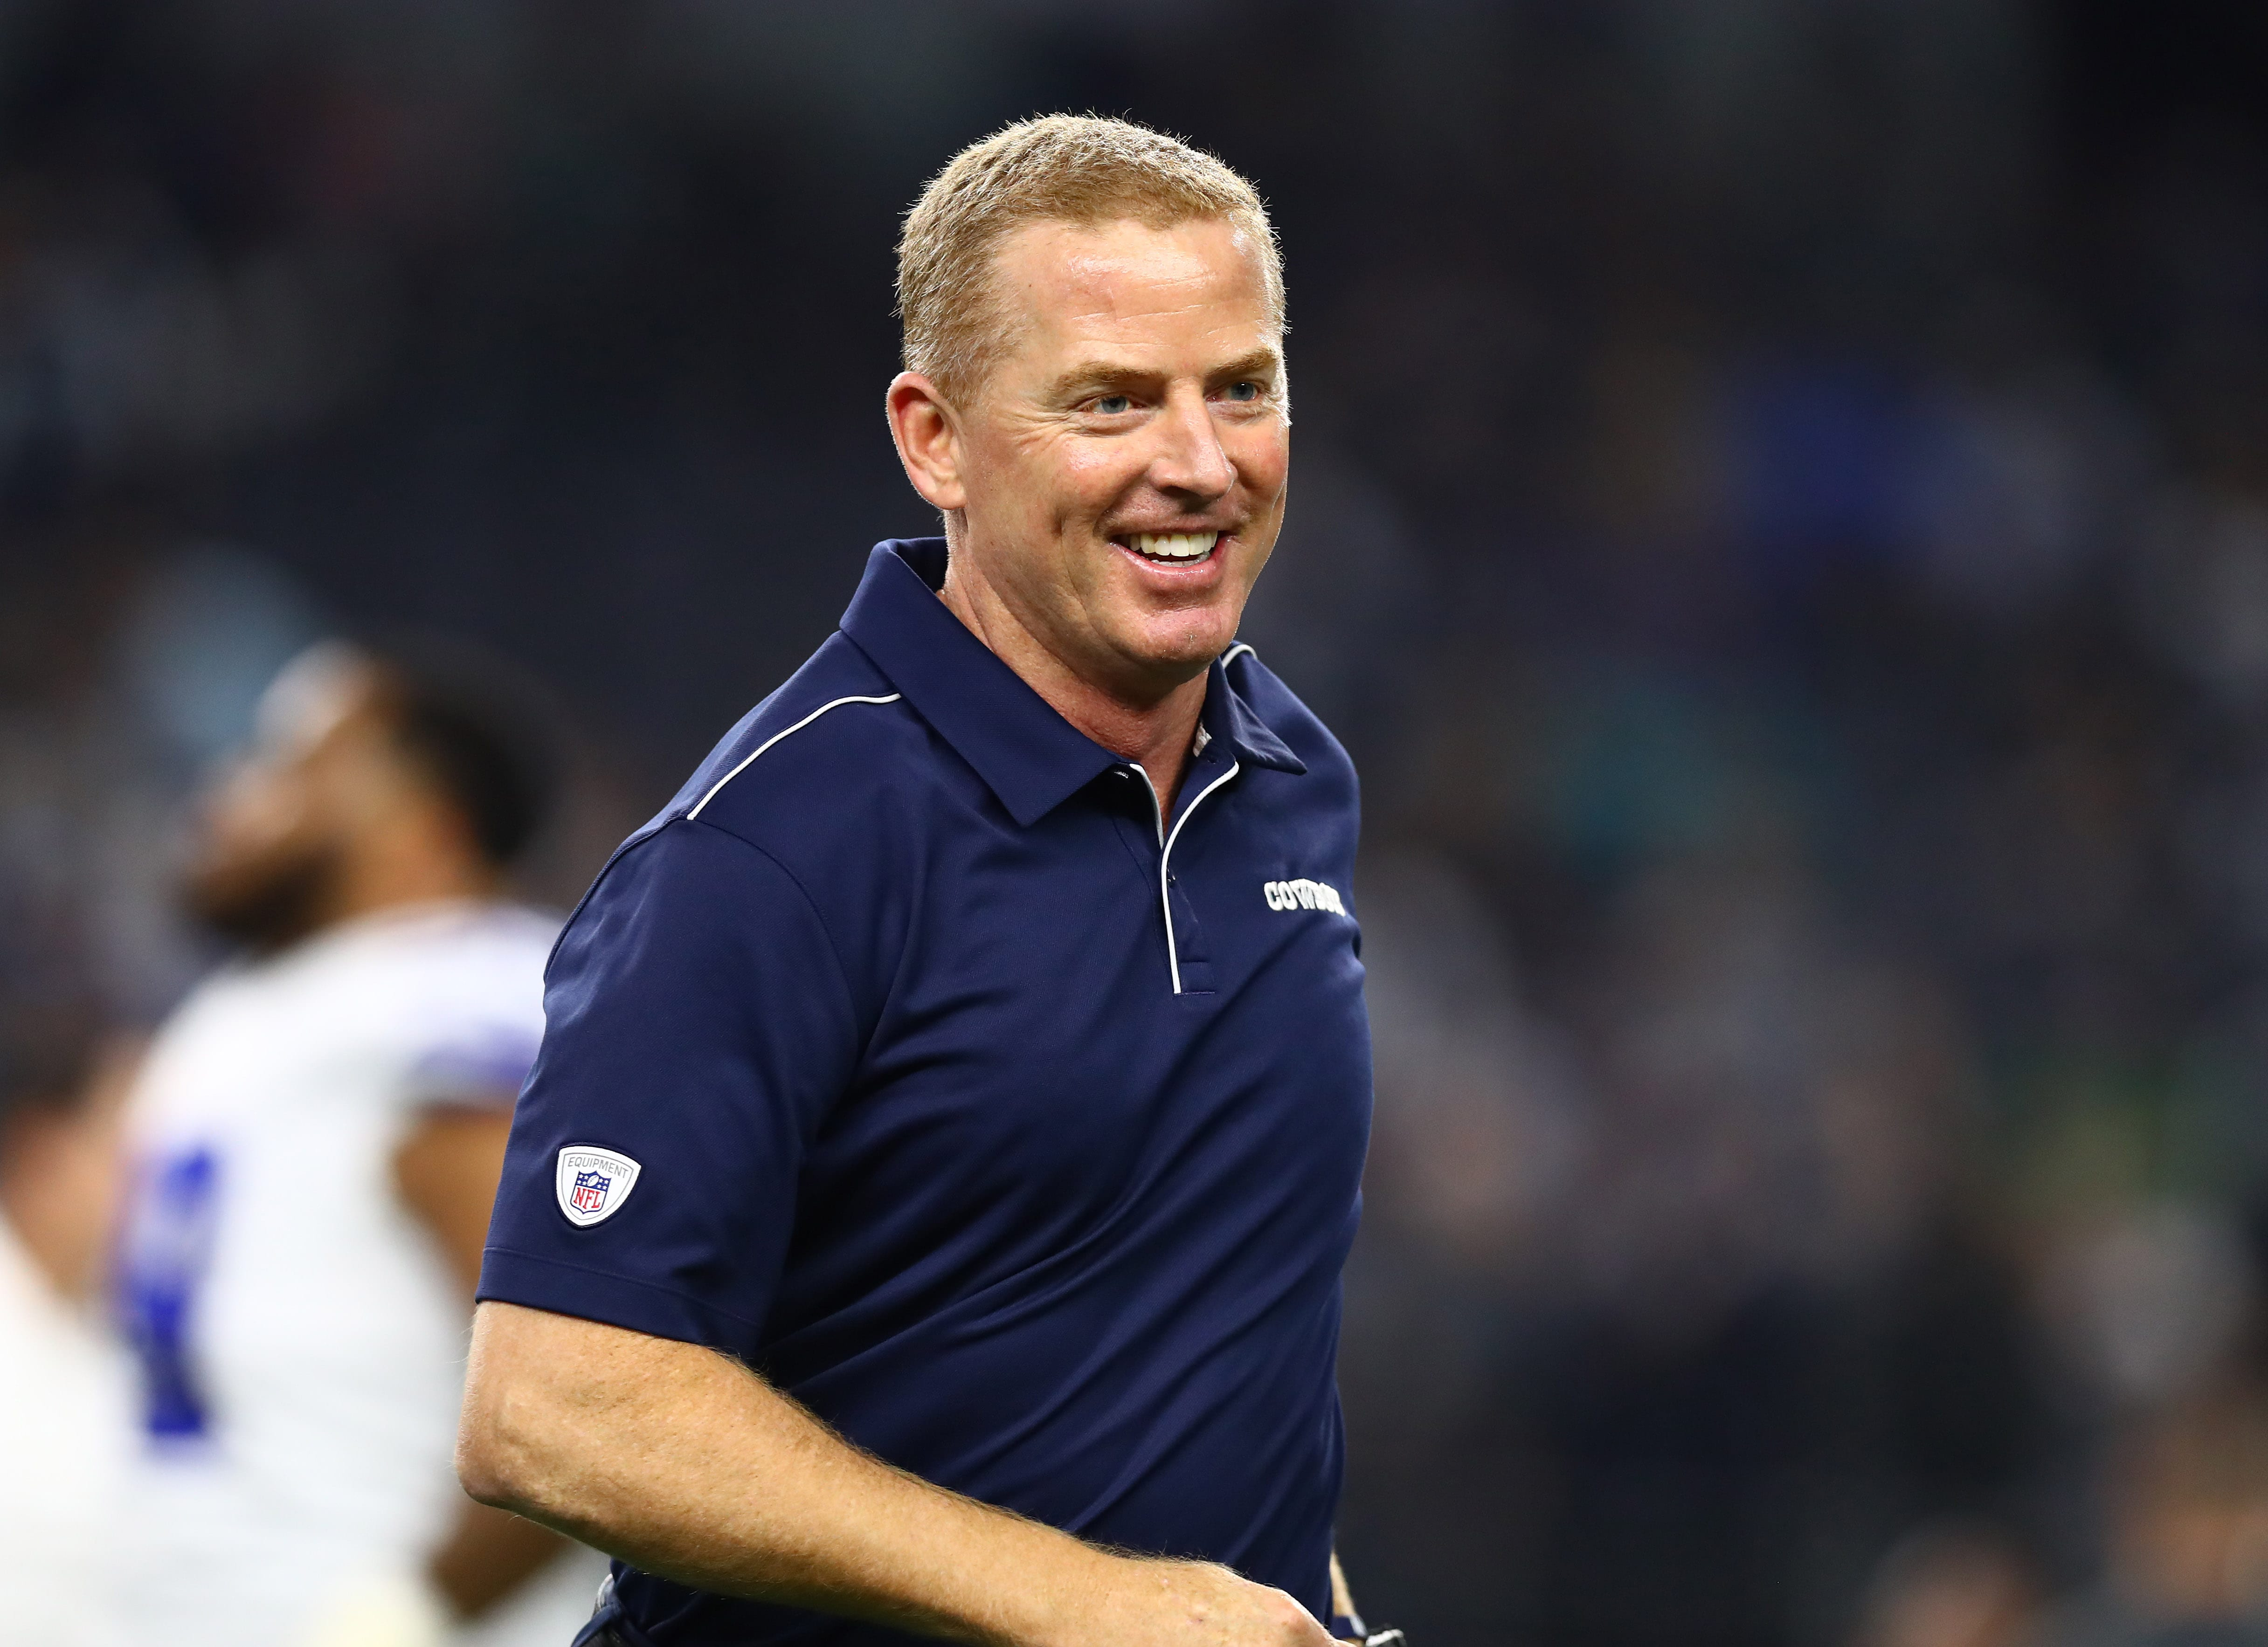 The New York Giants Have Two Potential Head Coach Candidates